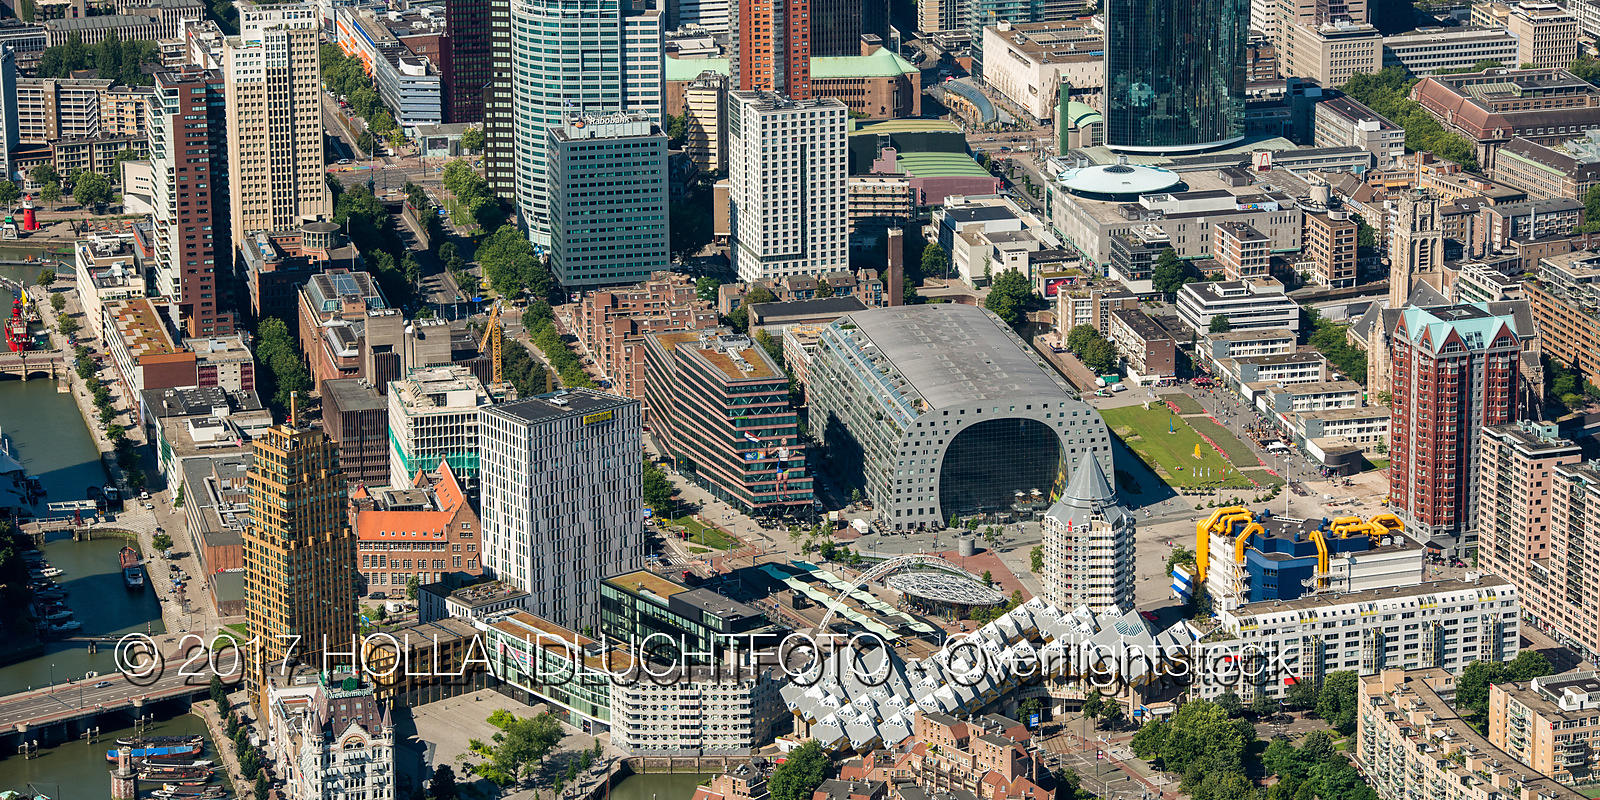 Cityscape of Downtown Rotterdam Netherlands